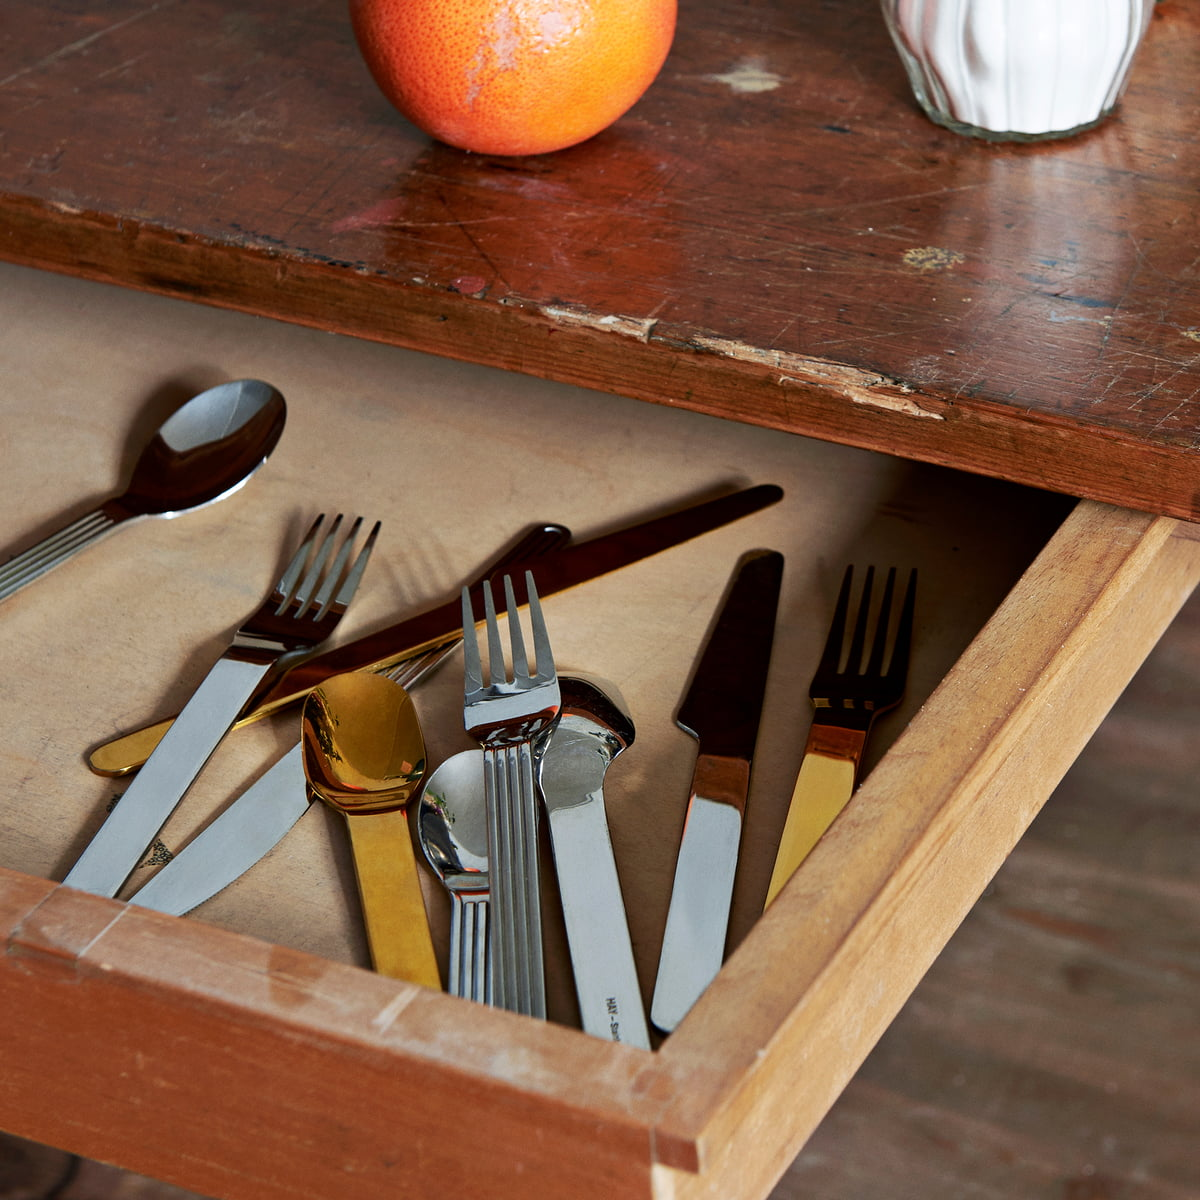 Hay - Everyday Cutlery / Sunday Cutlery & Everyday Cutlery by Hay | Connox